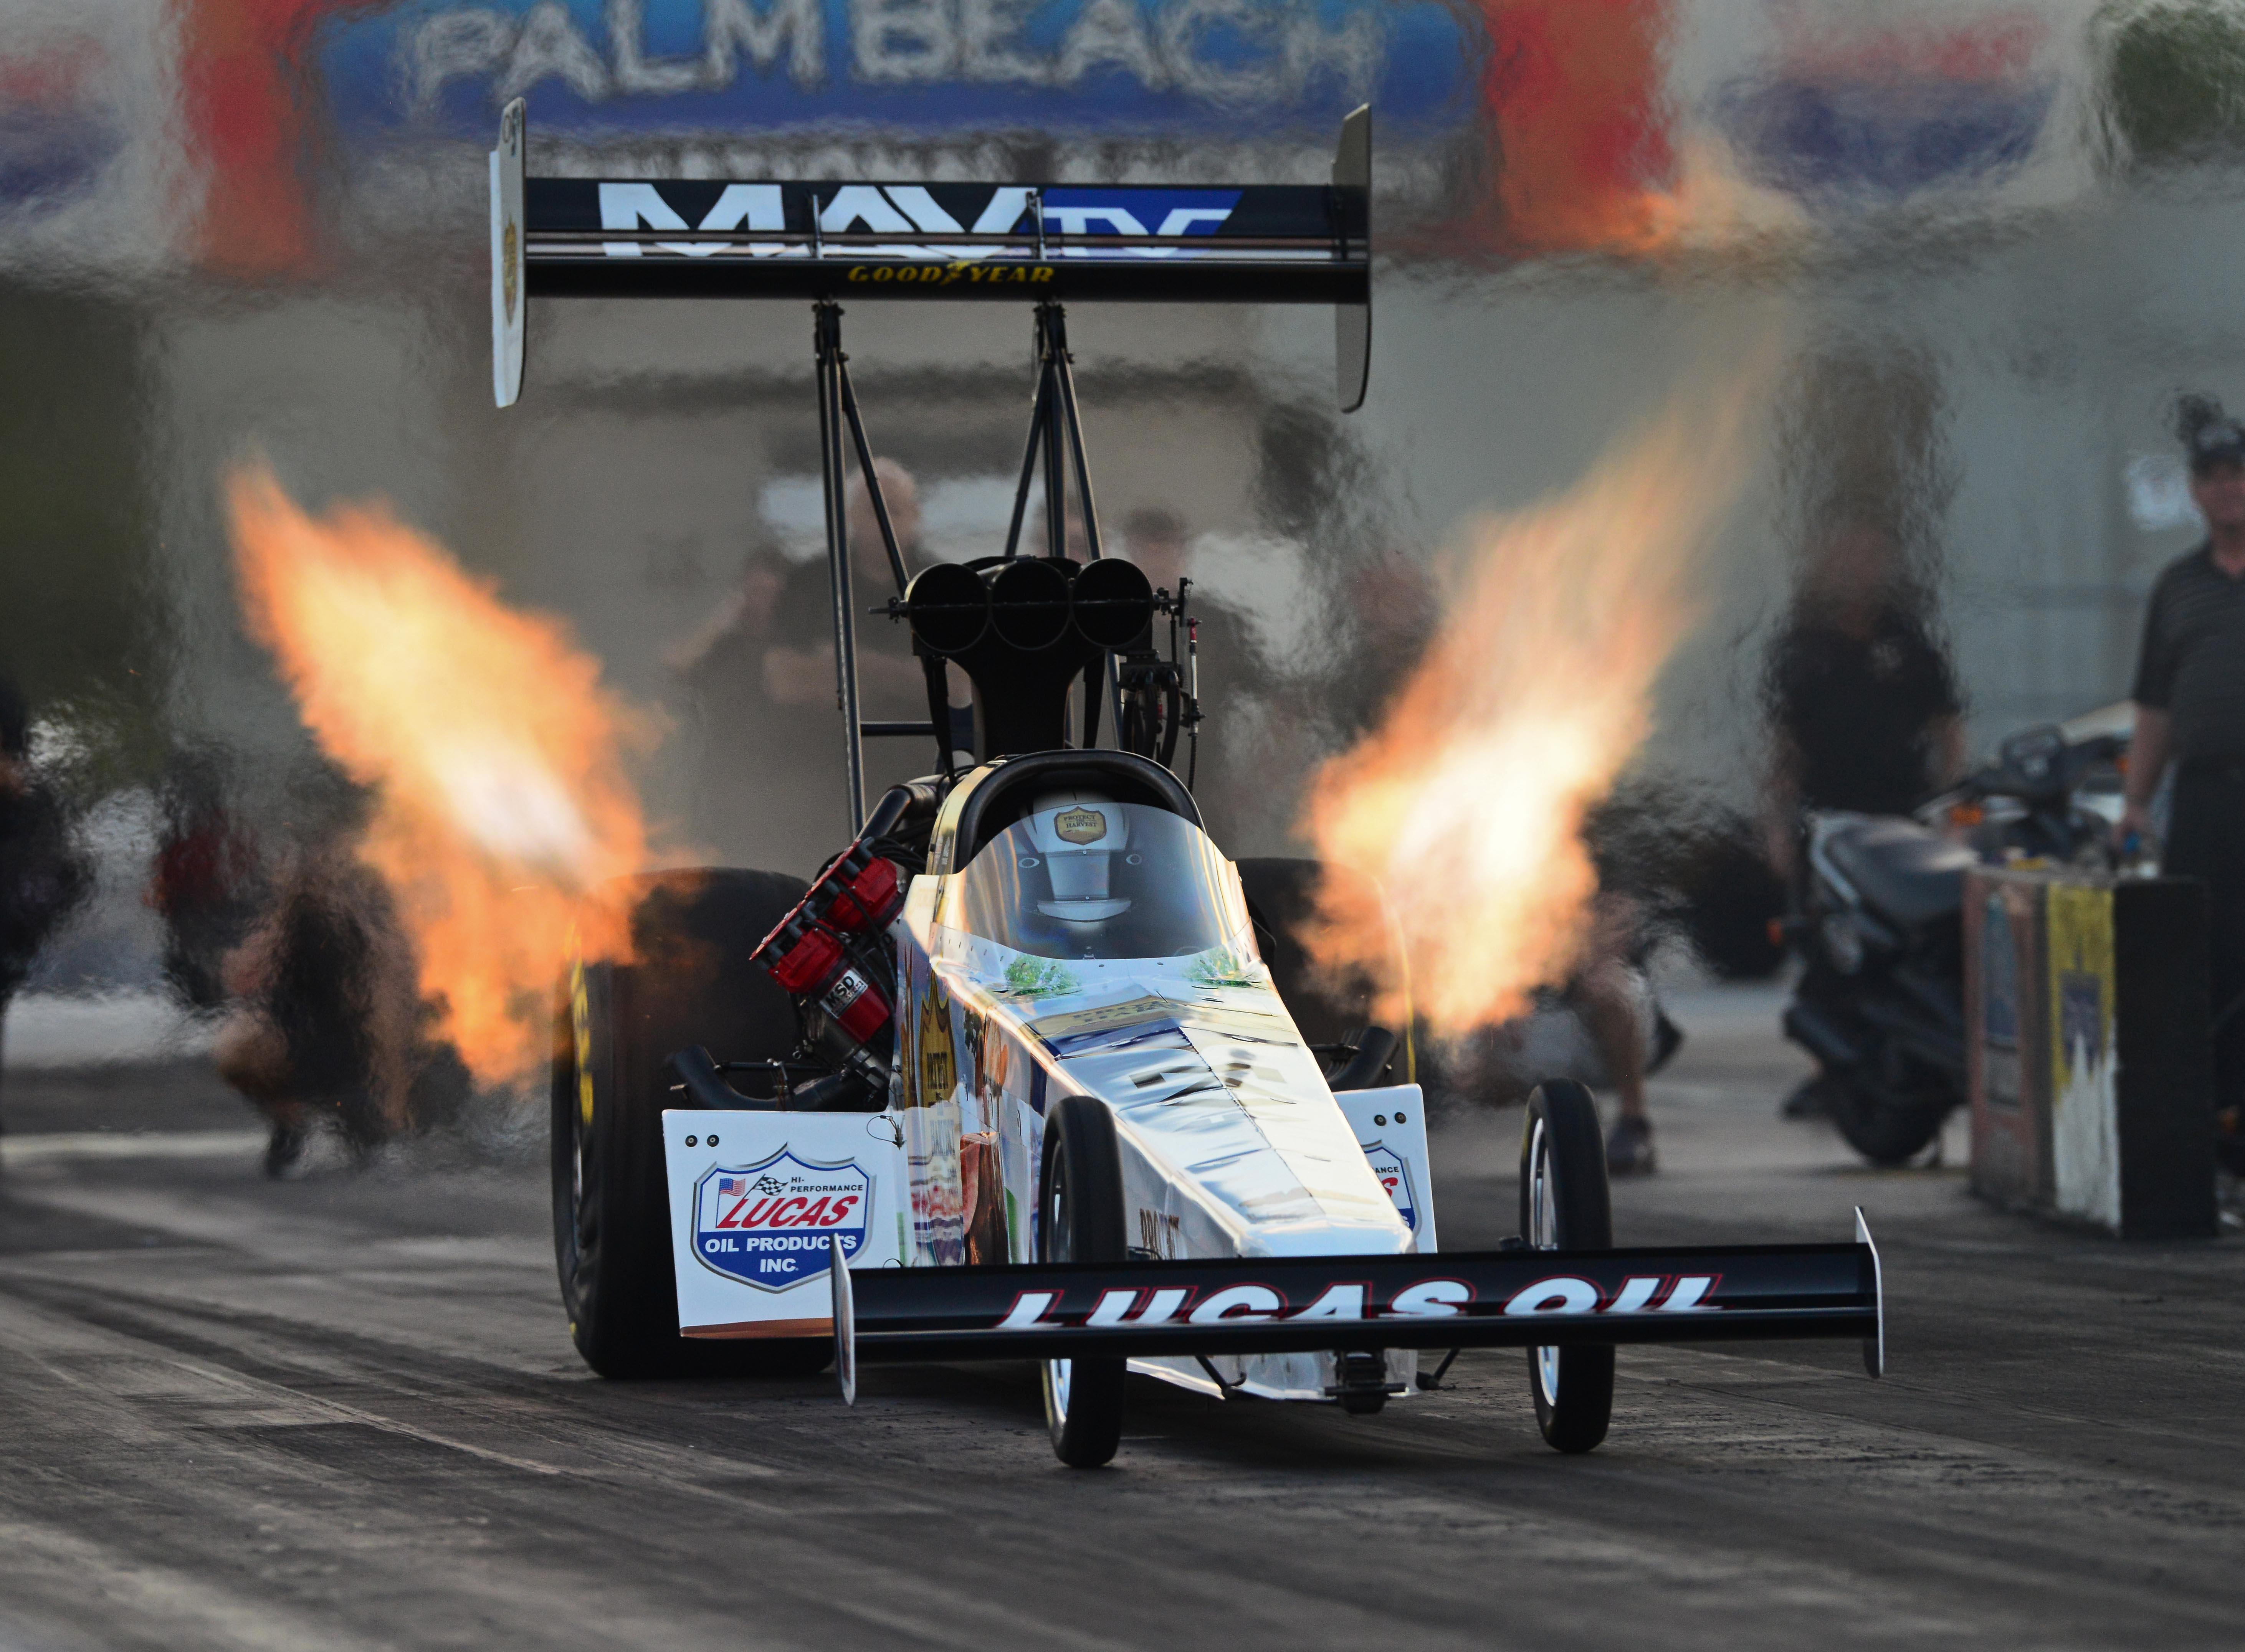 Top fuel dragster nhra drag racing race hot rod rods j for Wallpaper drag race motor